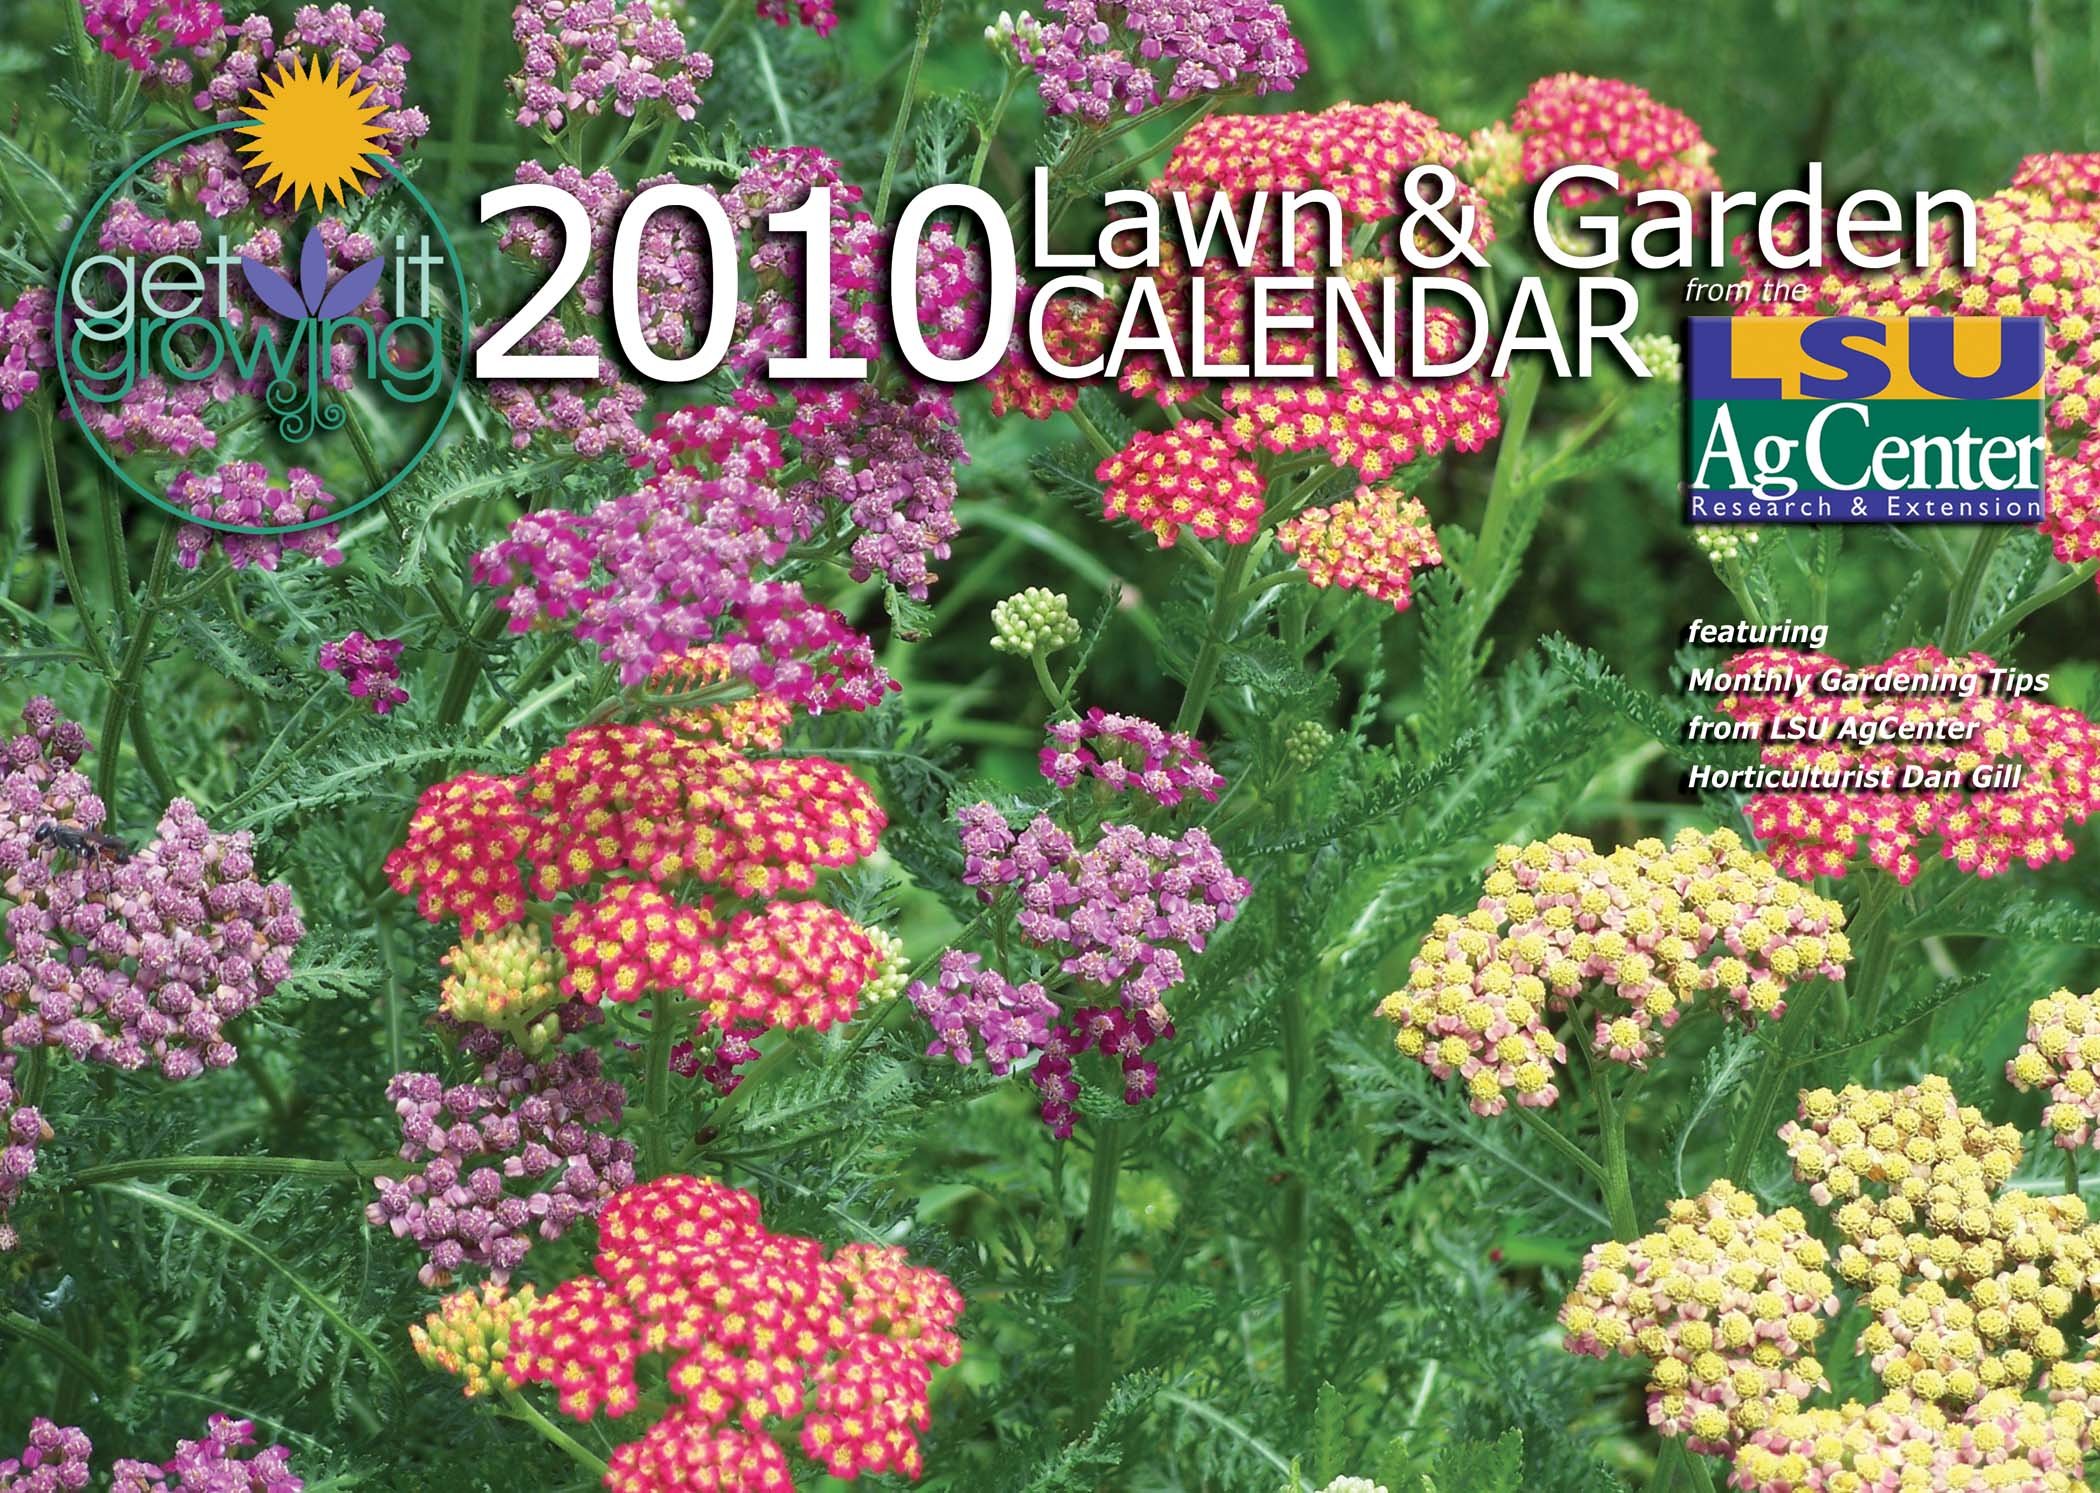 Get It Growing Calendar 2010 cover photo